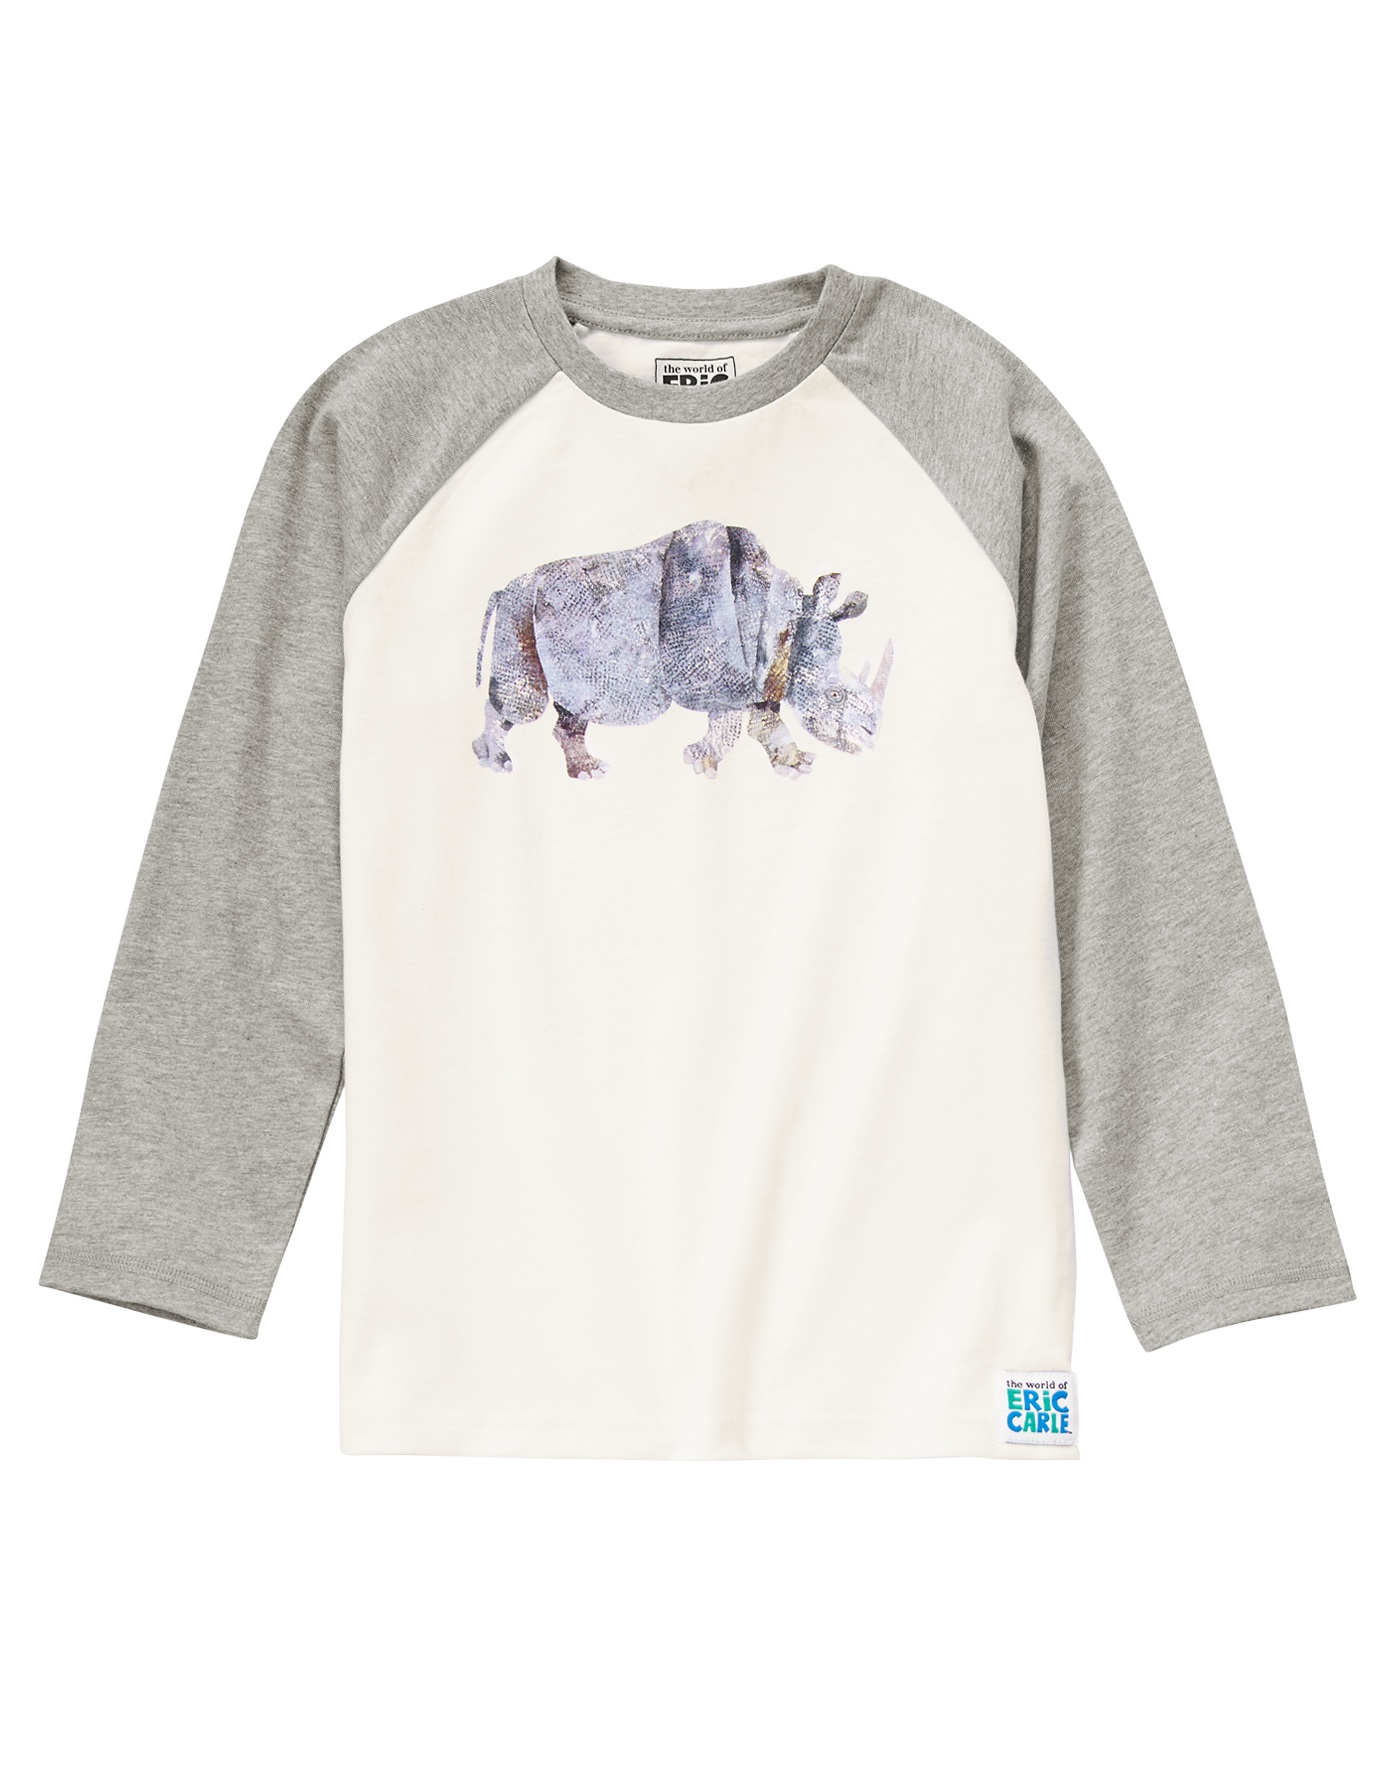 The World of Eric Carle™Rhino Tee